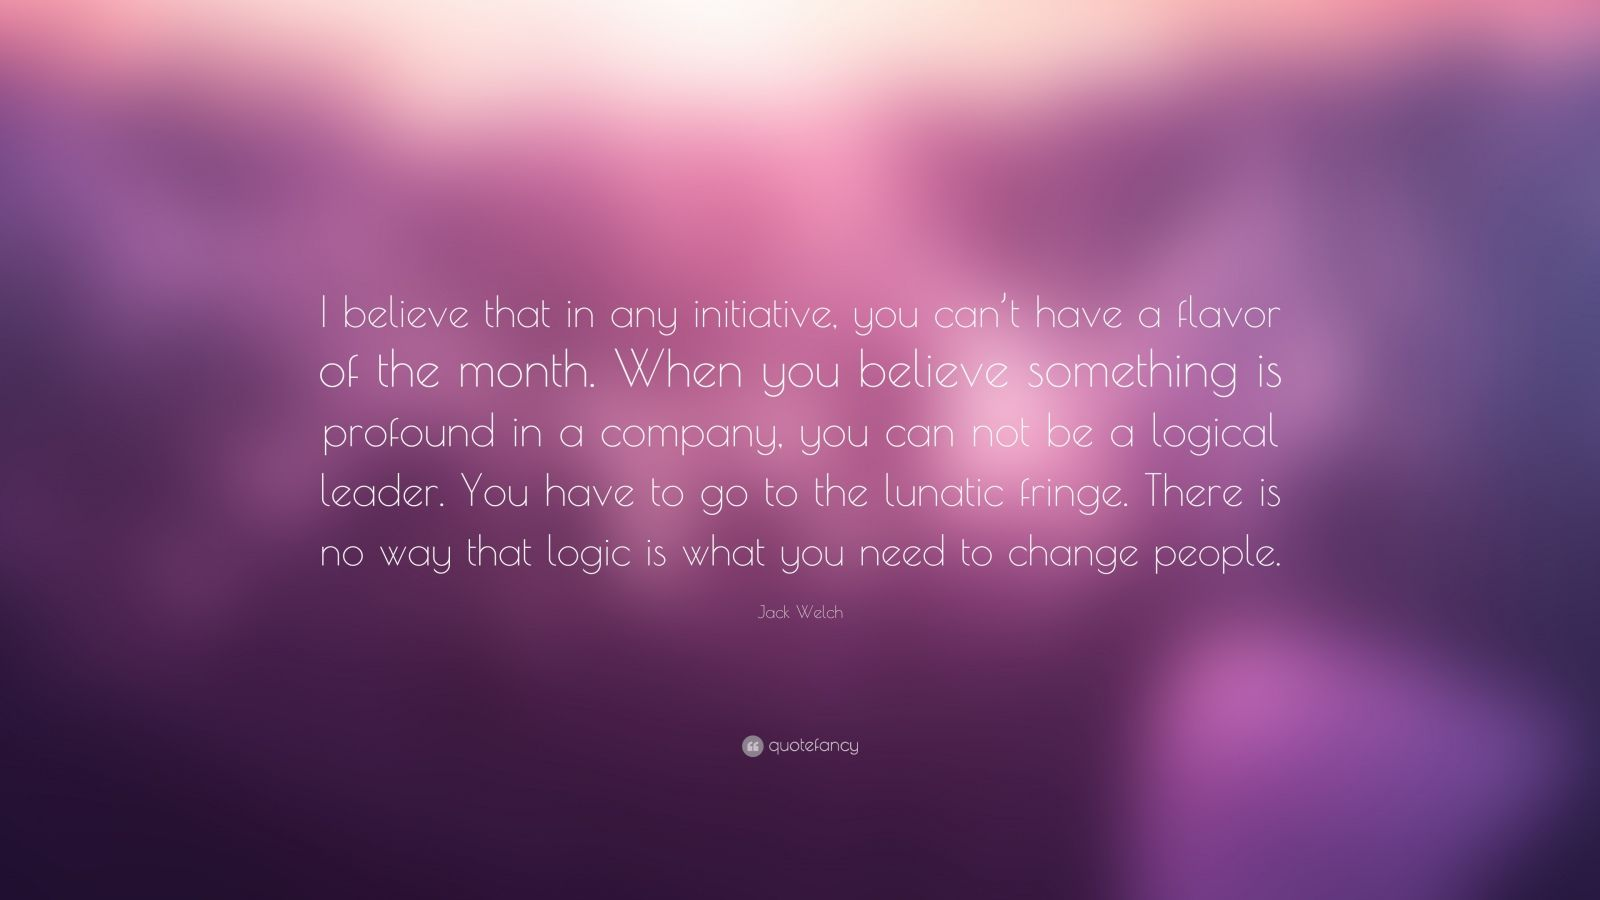 """Jack Welch Quote: """"I believe that in any initiative, you can't have a flavor of the month. When you believe something is profound in a company, you can not be a logical leader. You have to go to the lunatic fringe. There is no way that logic is what you need to change people."""""""